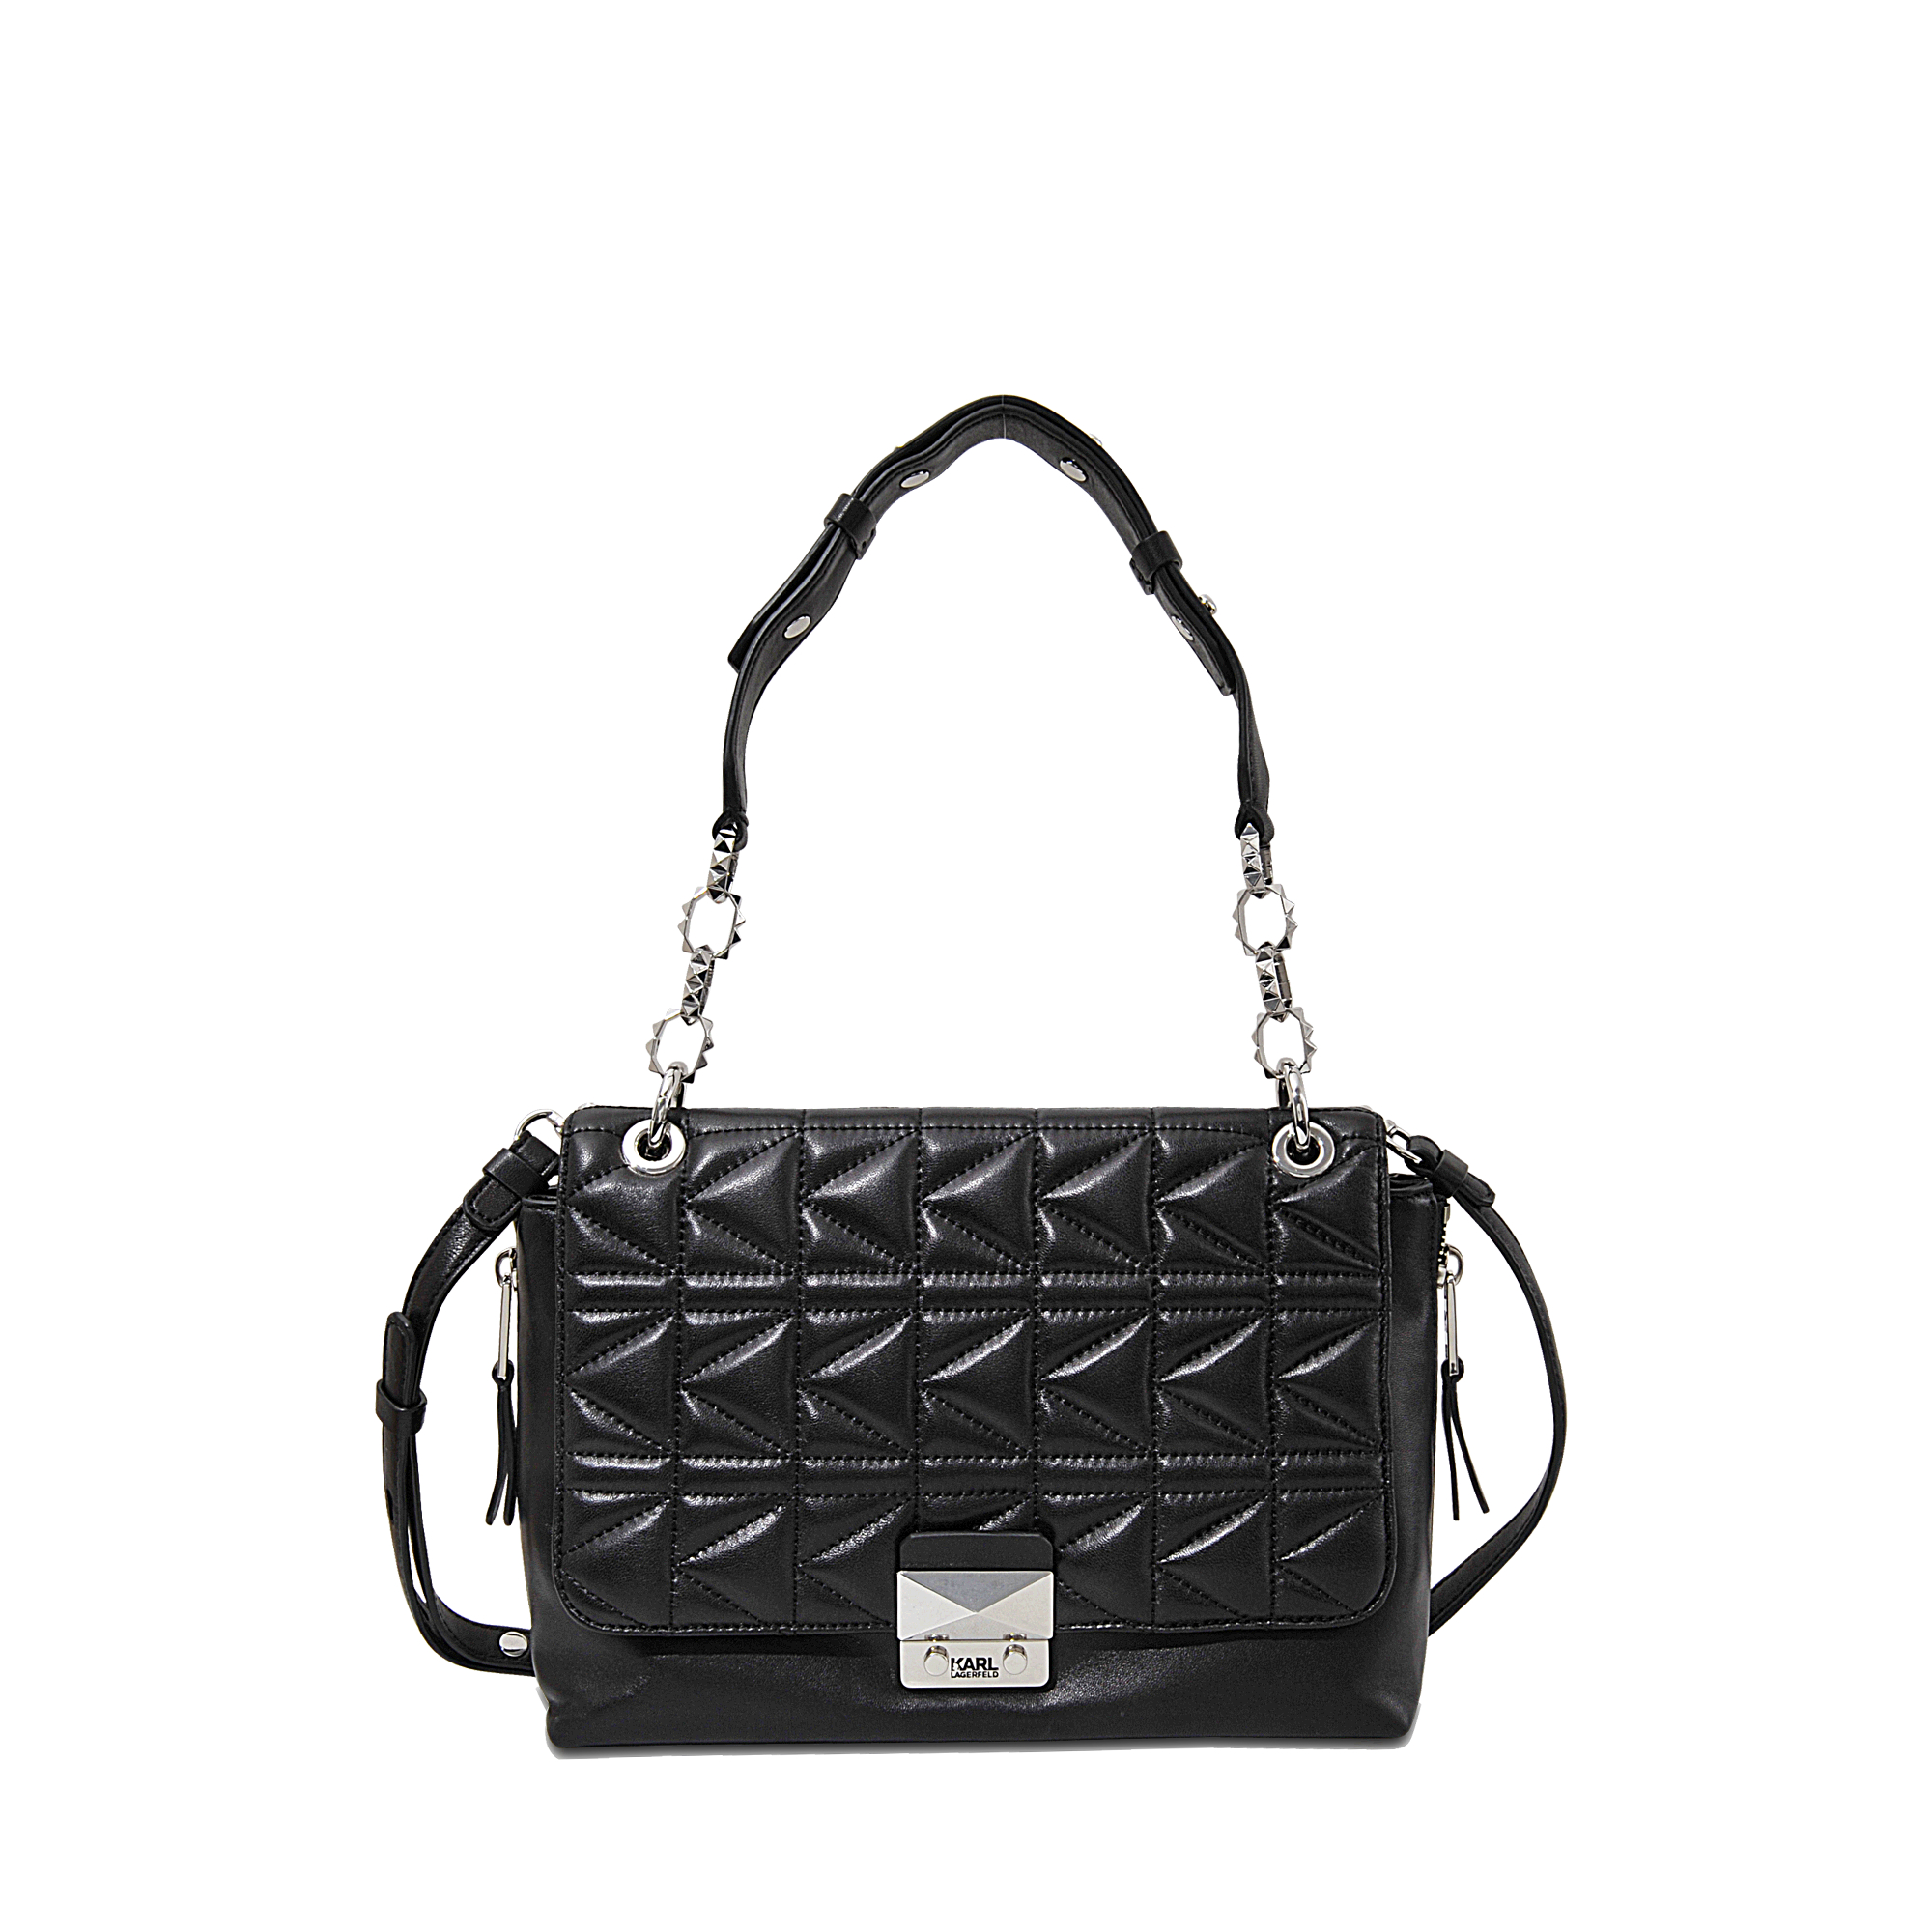 karl-lagerfeld-bag-kuilted-flap-product-